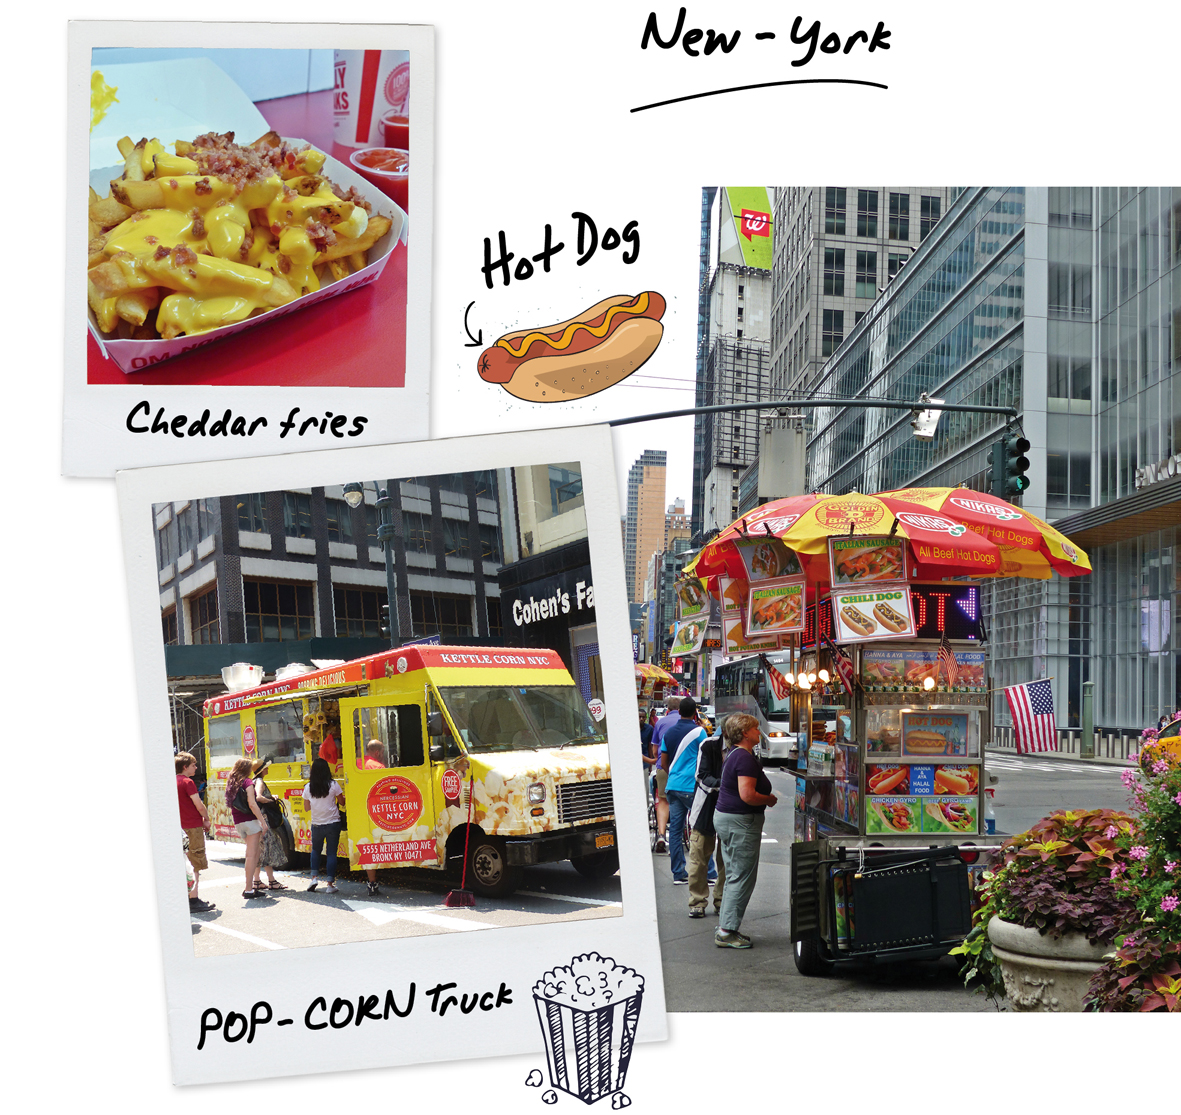 usa, New York, food, fast food, hot dog, frites, cheddar, bacon, pop corn, voyage, road trip